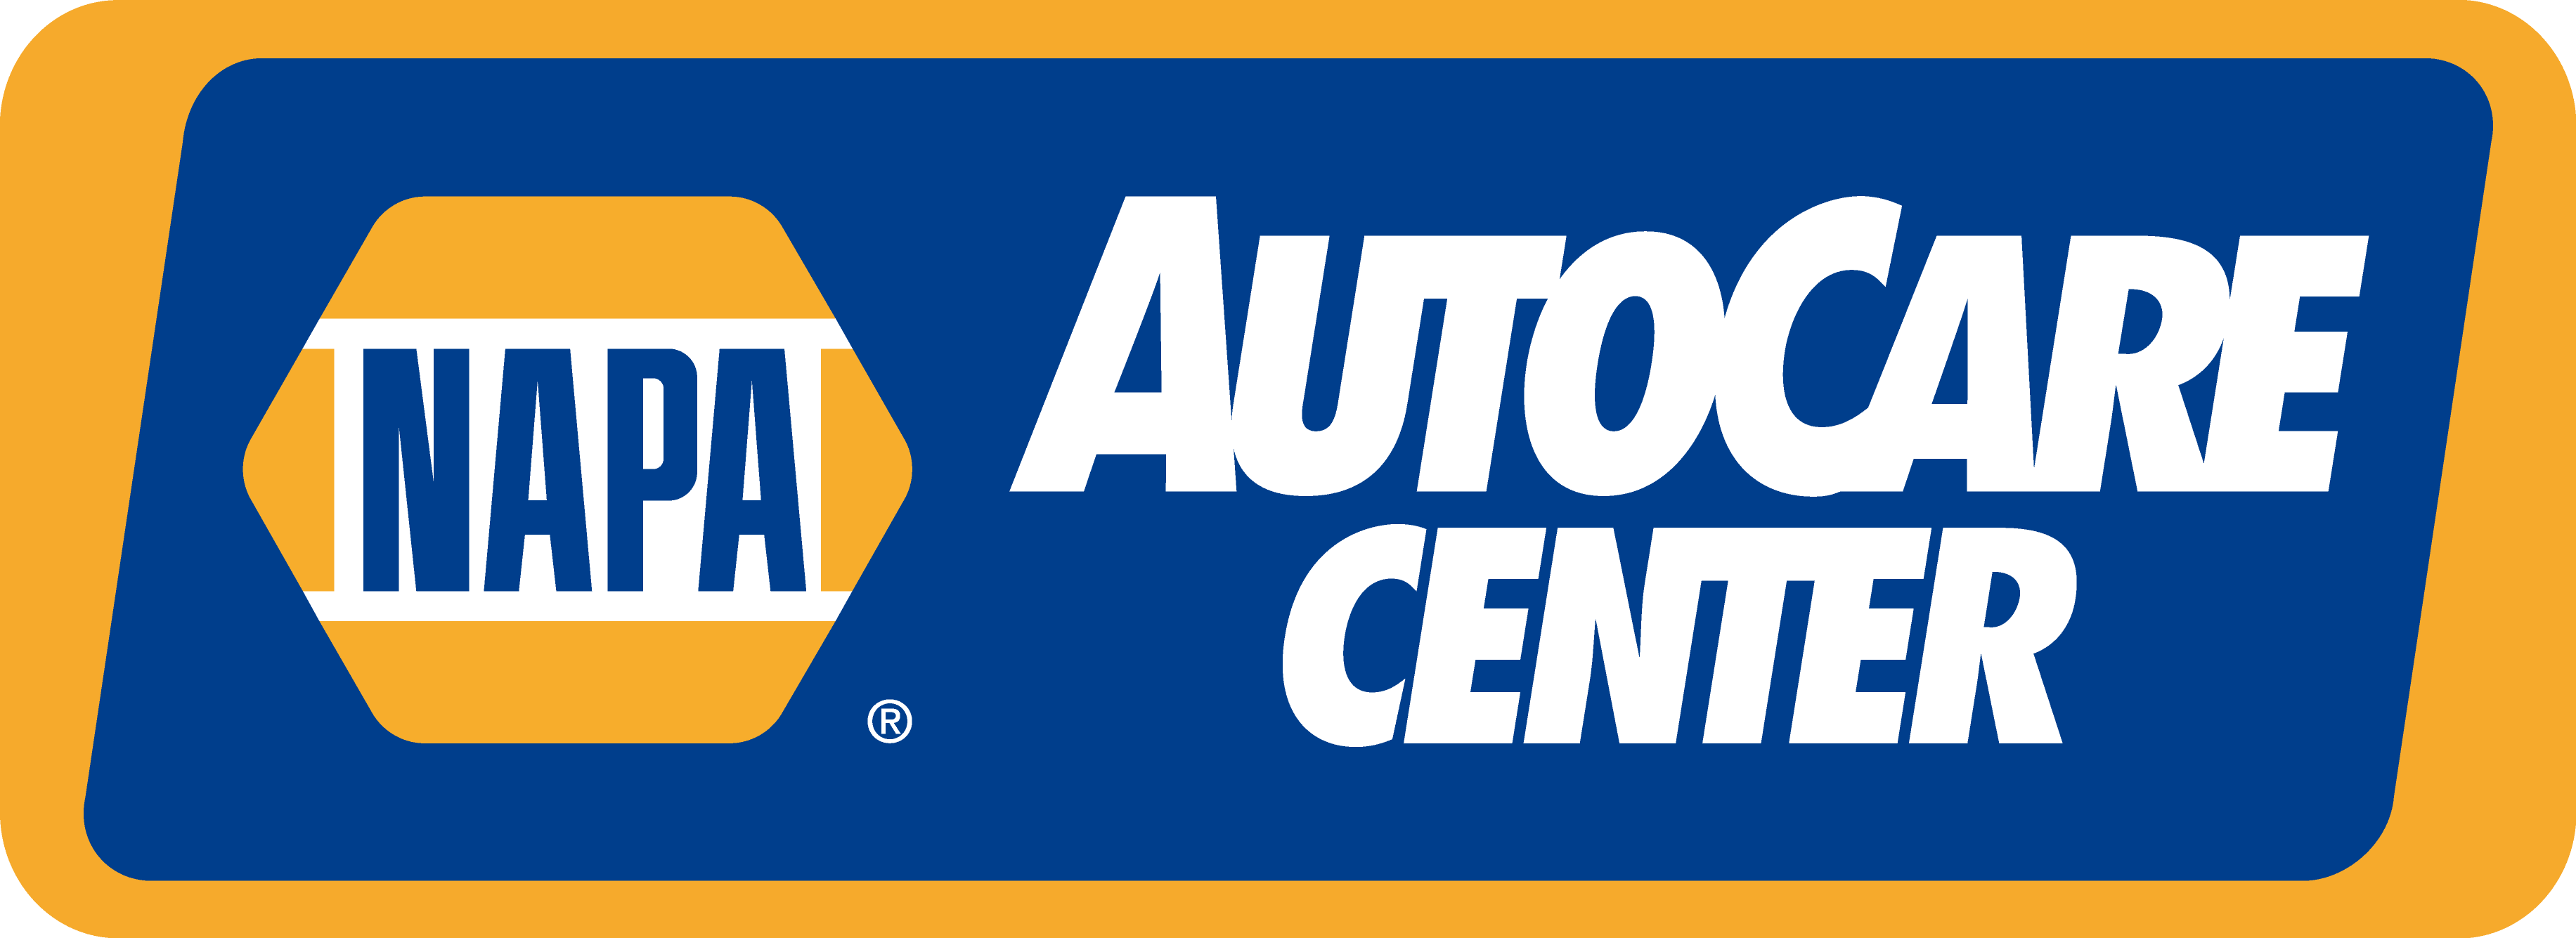 NAPA Auto Care Center, Yee's Auto Tech, Sacramento, CA, 95818